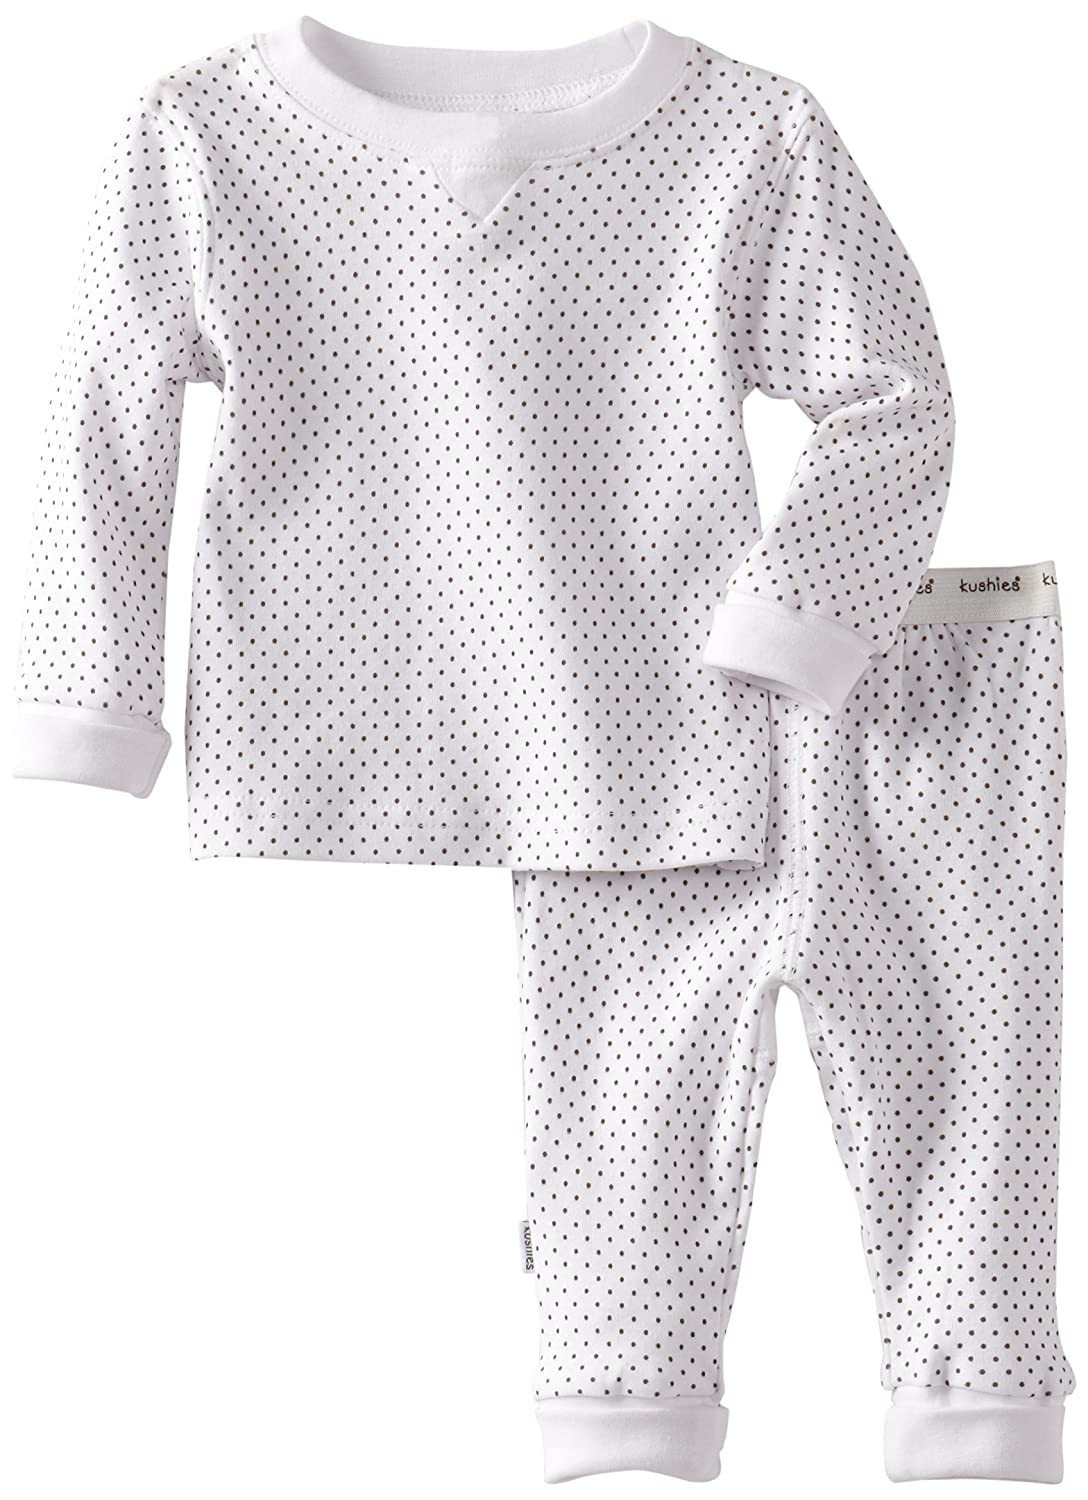 Kushies Baby Everyday Layette 2-Piece Set, White Dots, 24 Months, 1 Pack A471-White Dots-24 Months